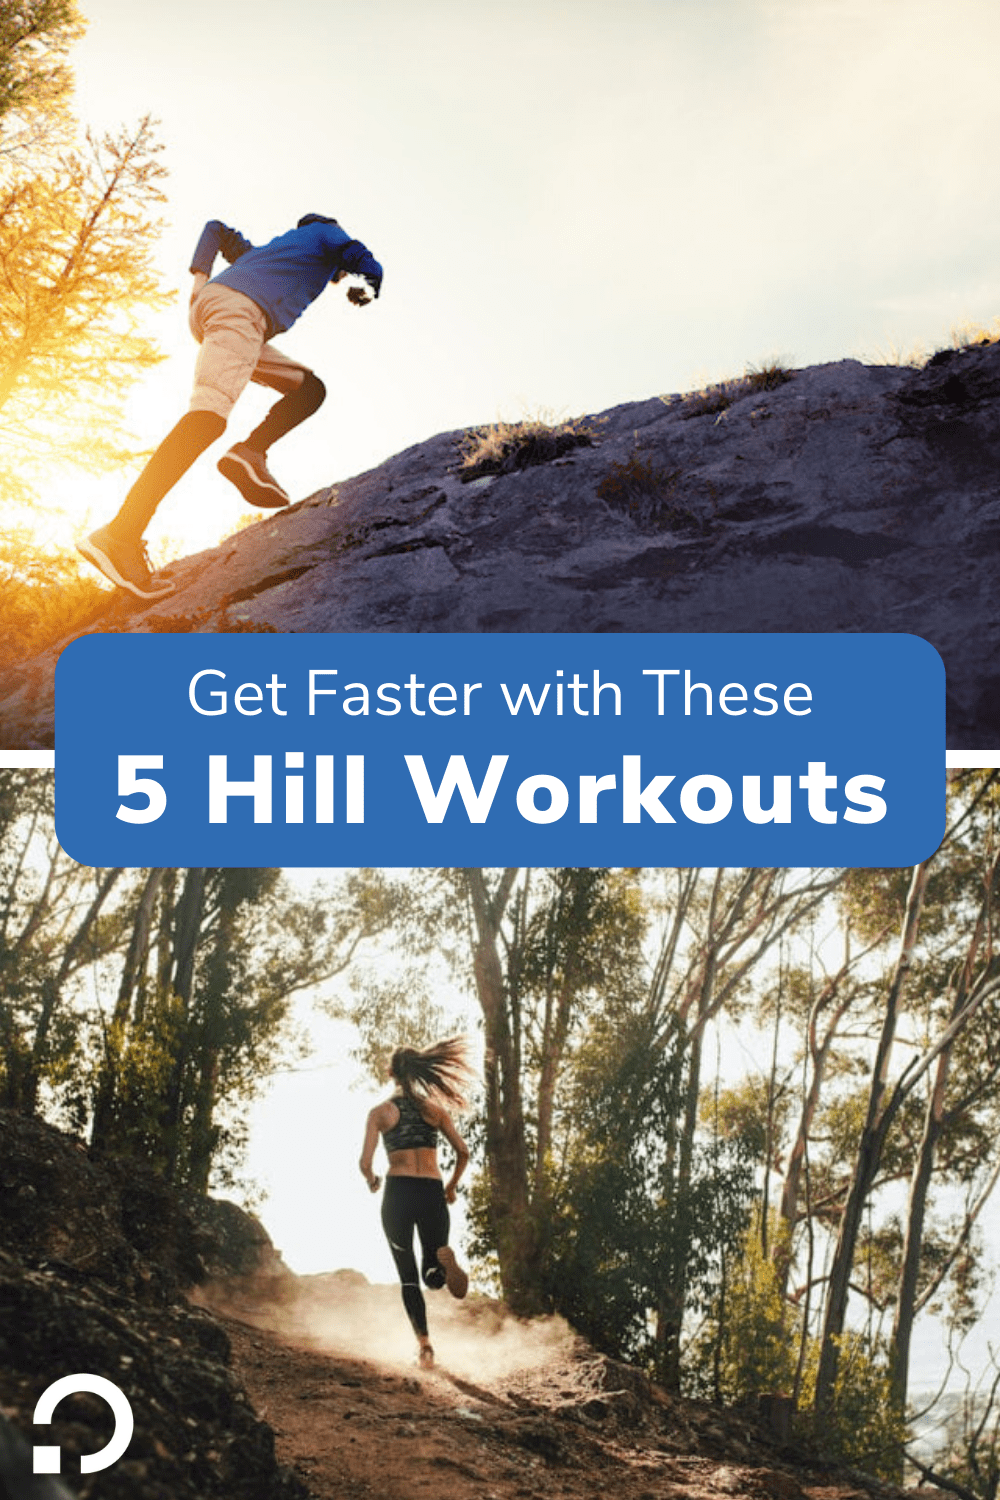 hill workouts pin image